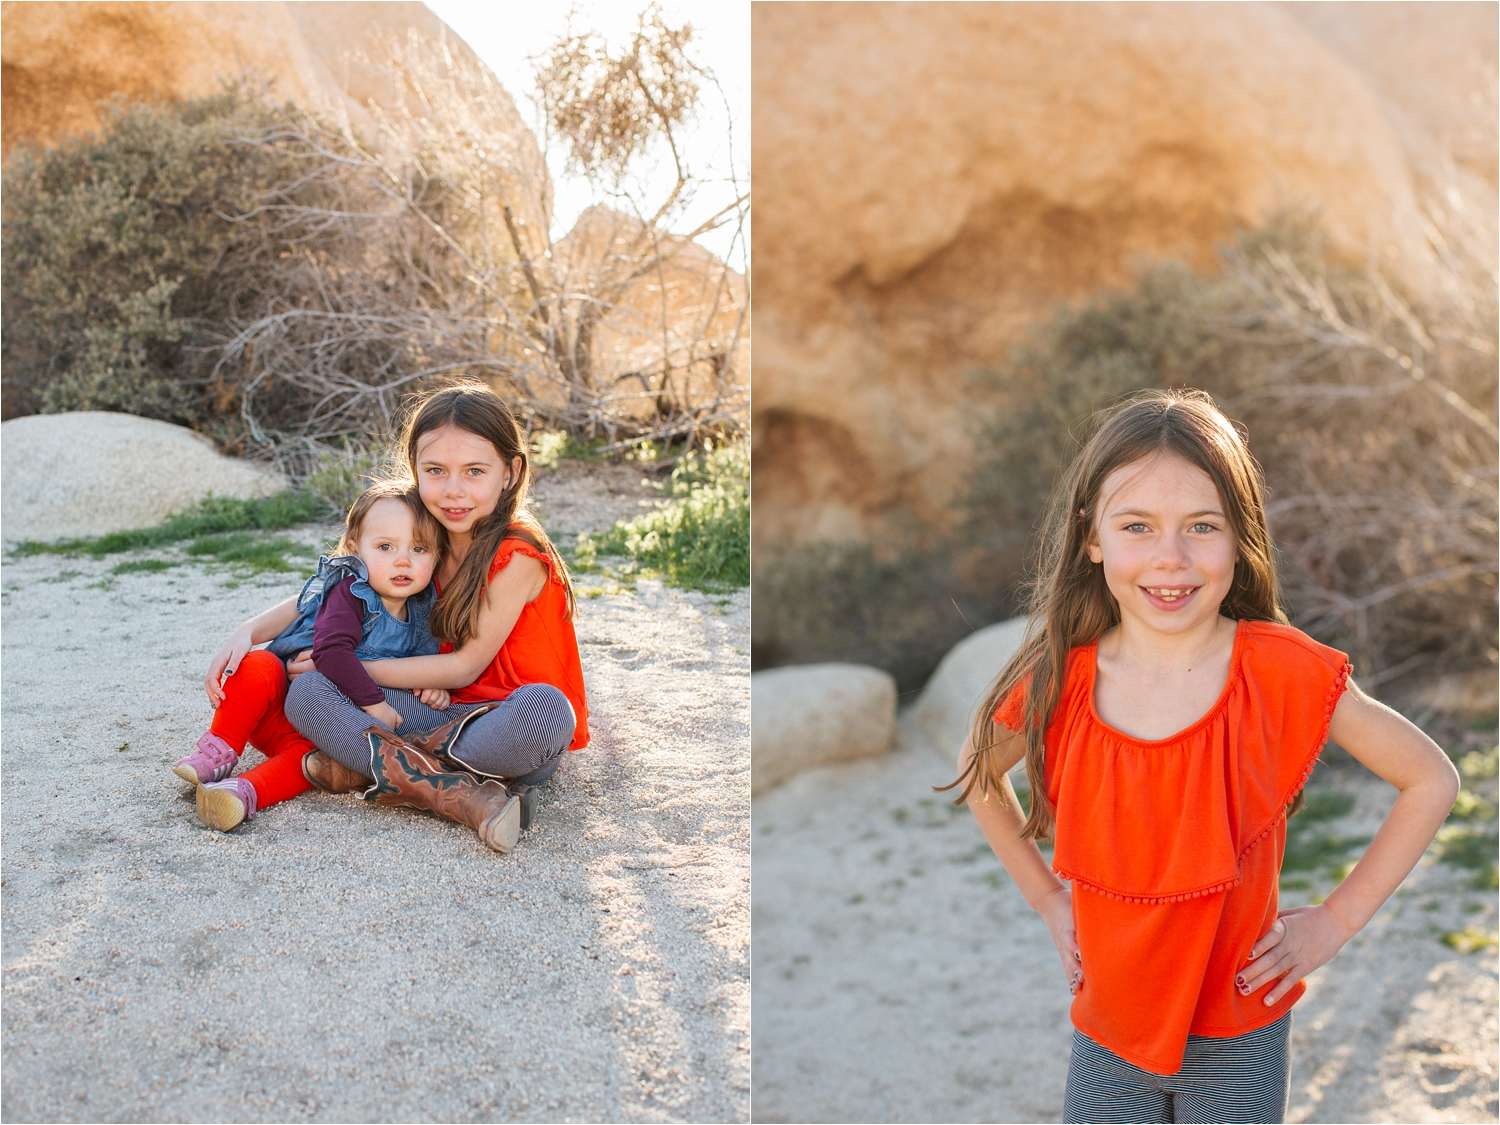 Lifestyle Family Session in Southern California - https://brittneyhannonphotography.com